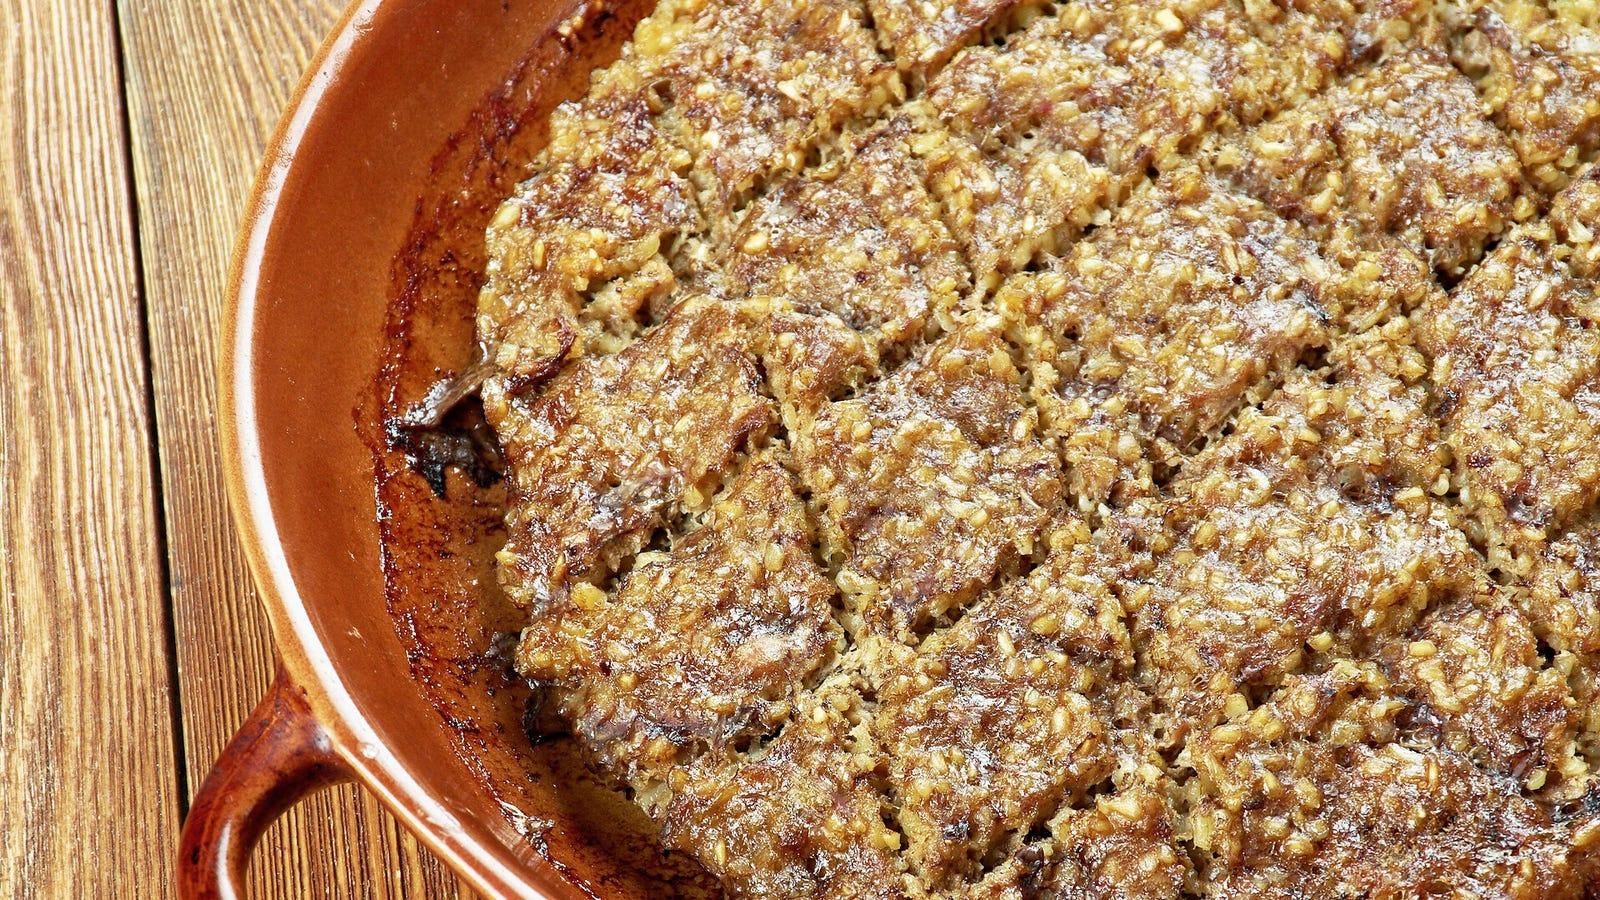 Make This Syrian Kibbeh Casserole When Your Budget Is Tight